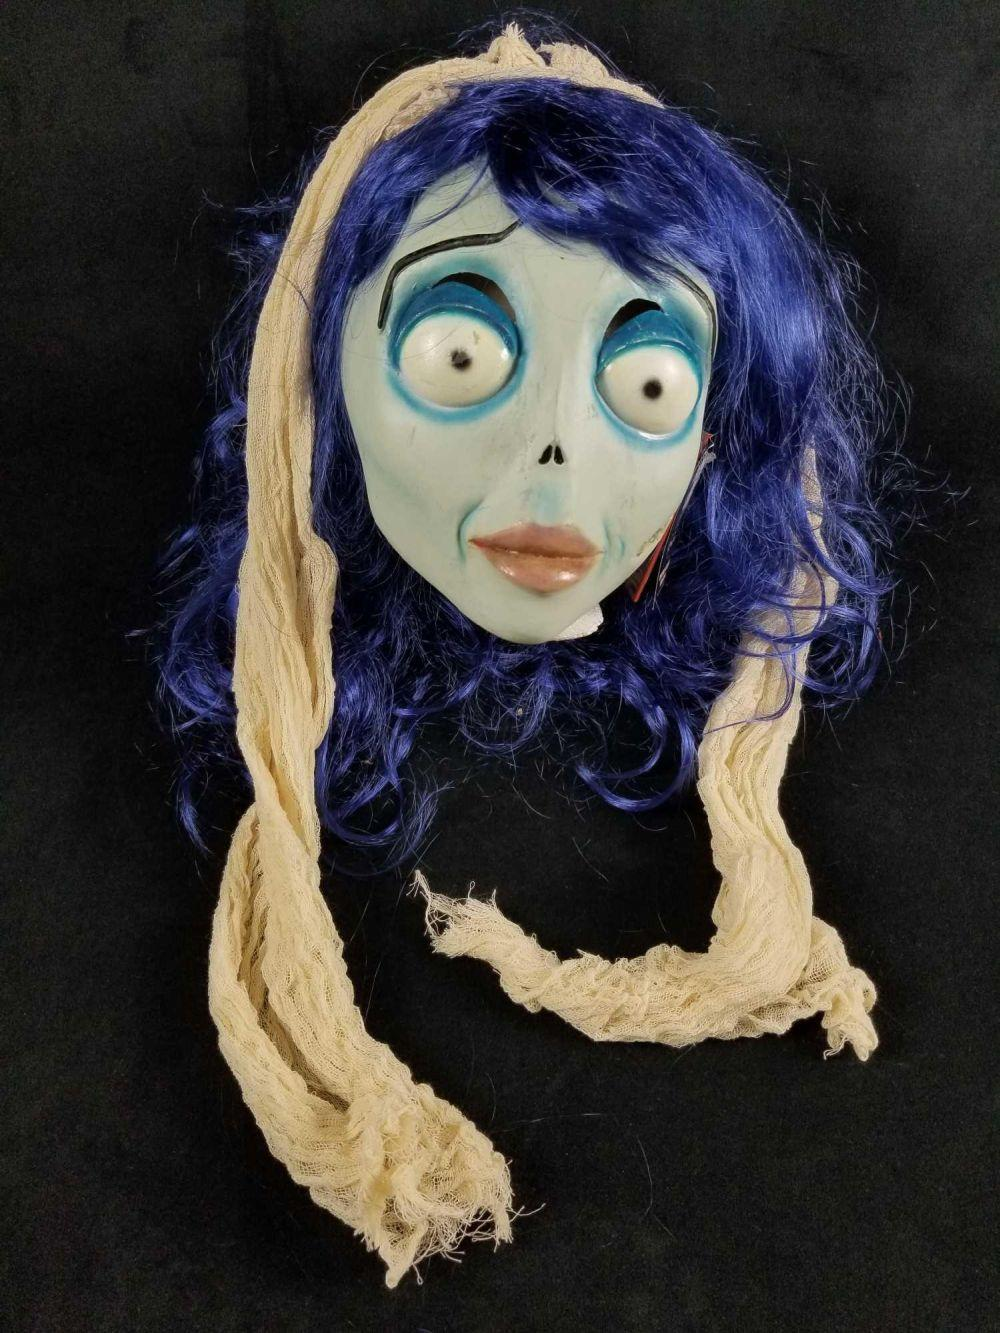 Standard Emily from Tim Burtons Corpse Bride